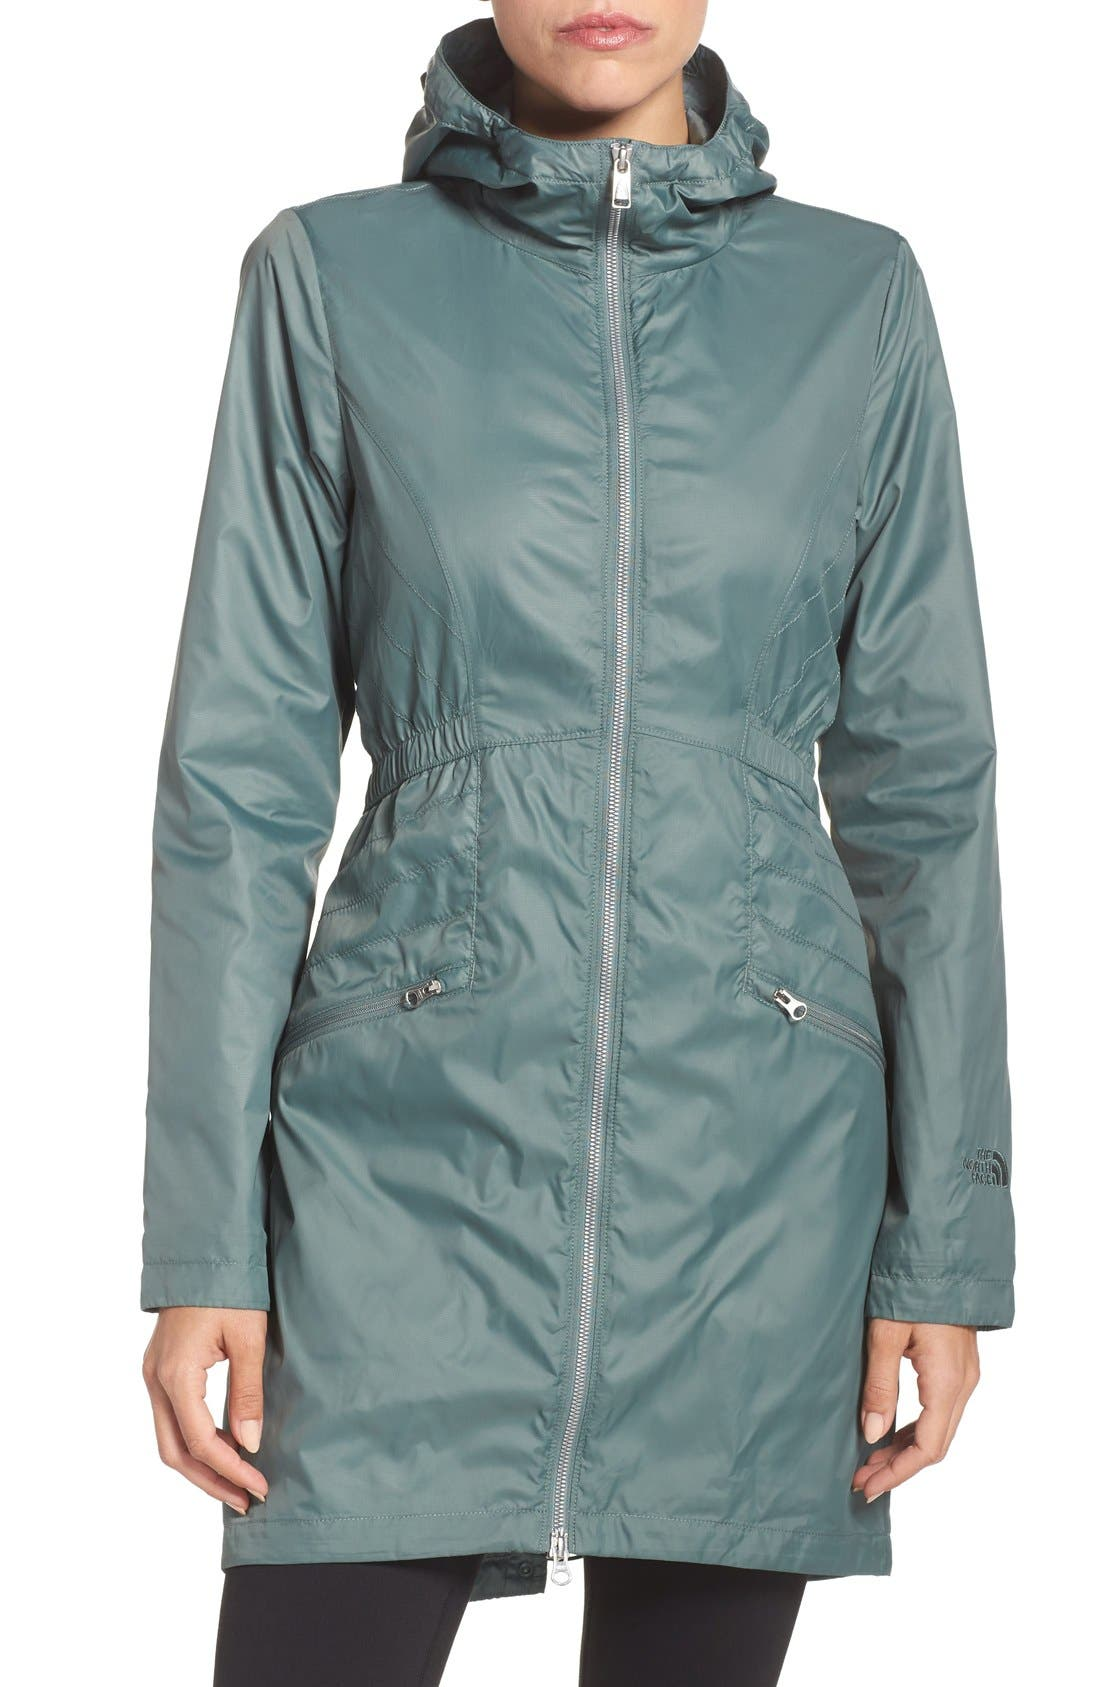 Alternate Image 1 Selected - The North Face Rissy 2 Packable Wind Resistant Jacket